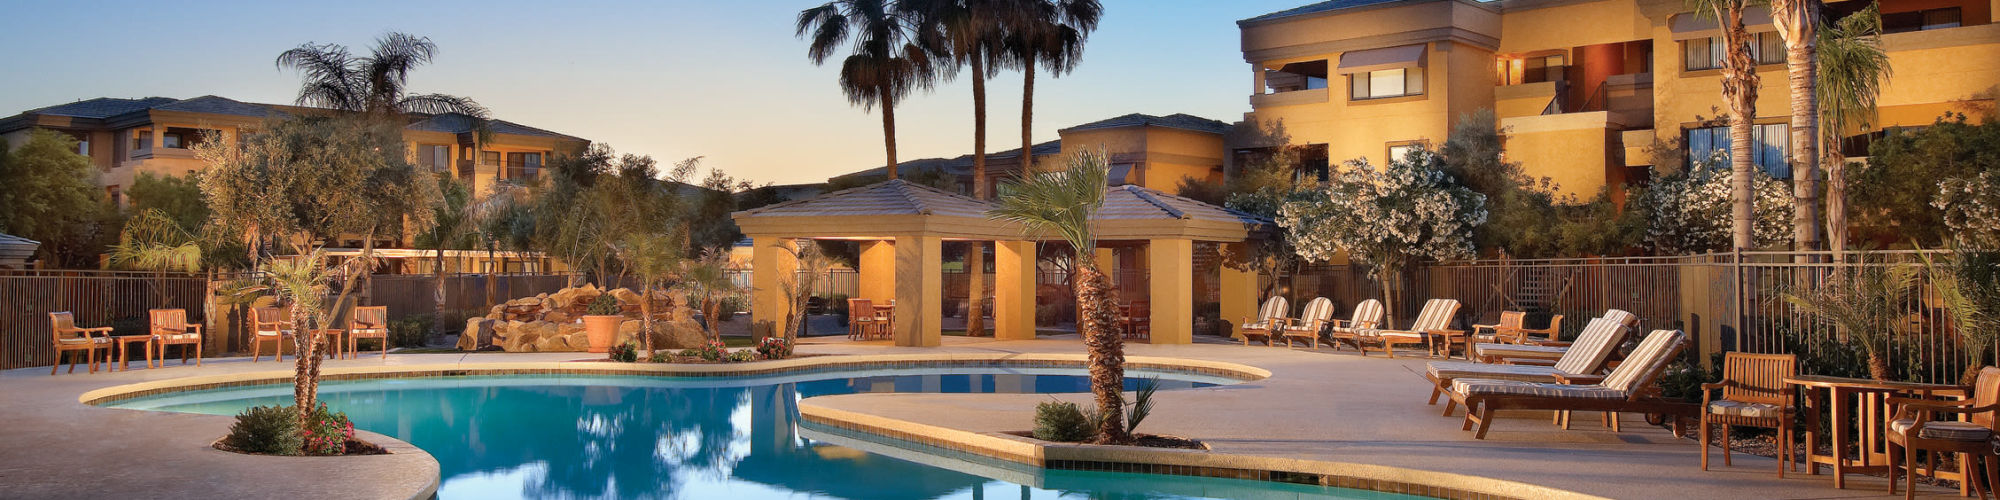 Contact us at Waterside at Ocotillo in Chandler, Arizona